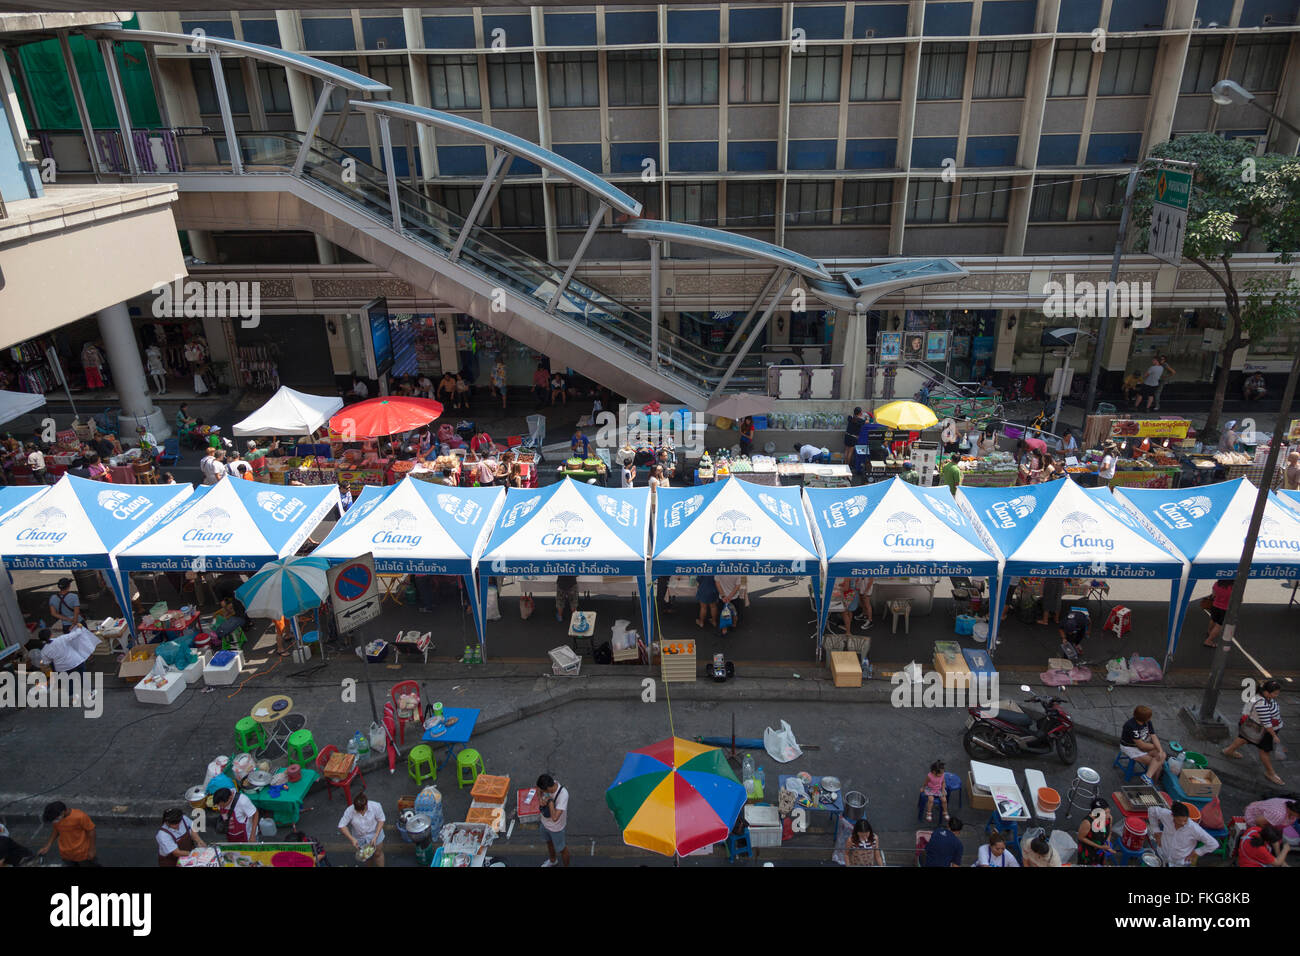 On Sunday the Sala Daeng street (Bangkok) overrun with food stalls. Sala Daeng envahie le Dimanche par des stands - Stock Image